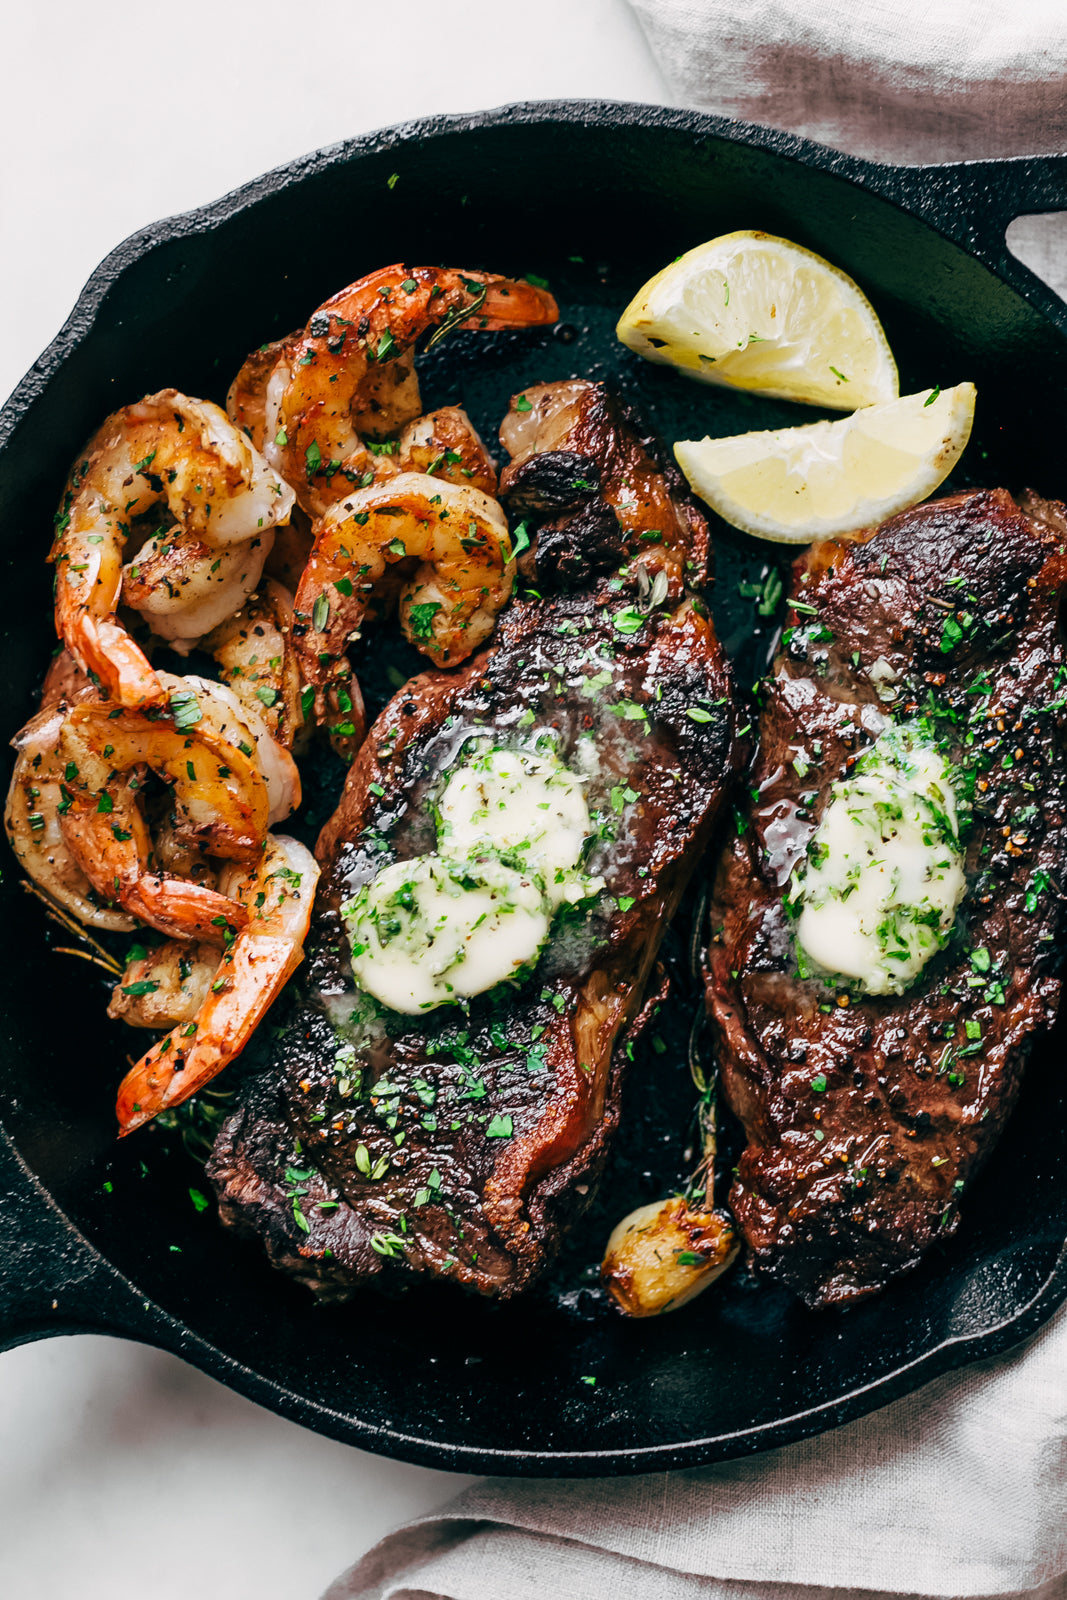 Garlic Butter Skillet Steak and Shrimp